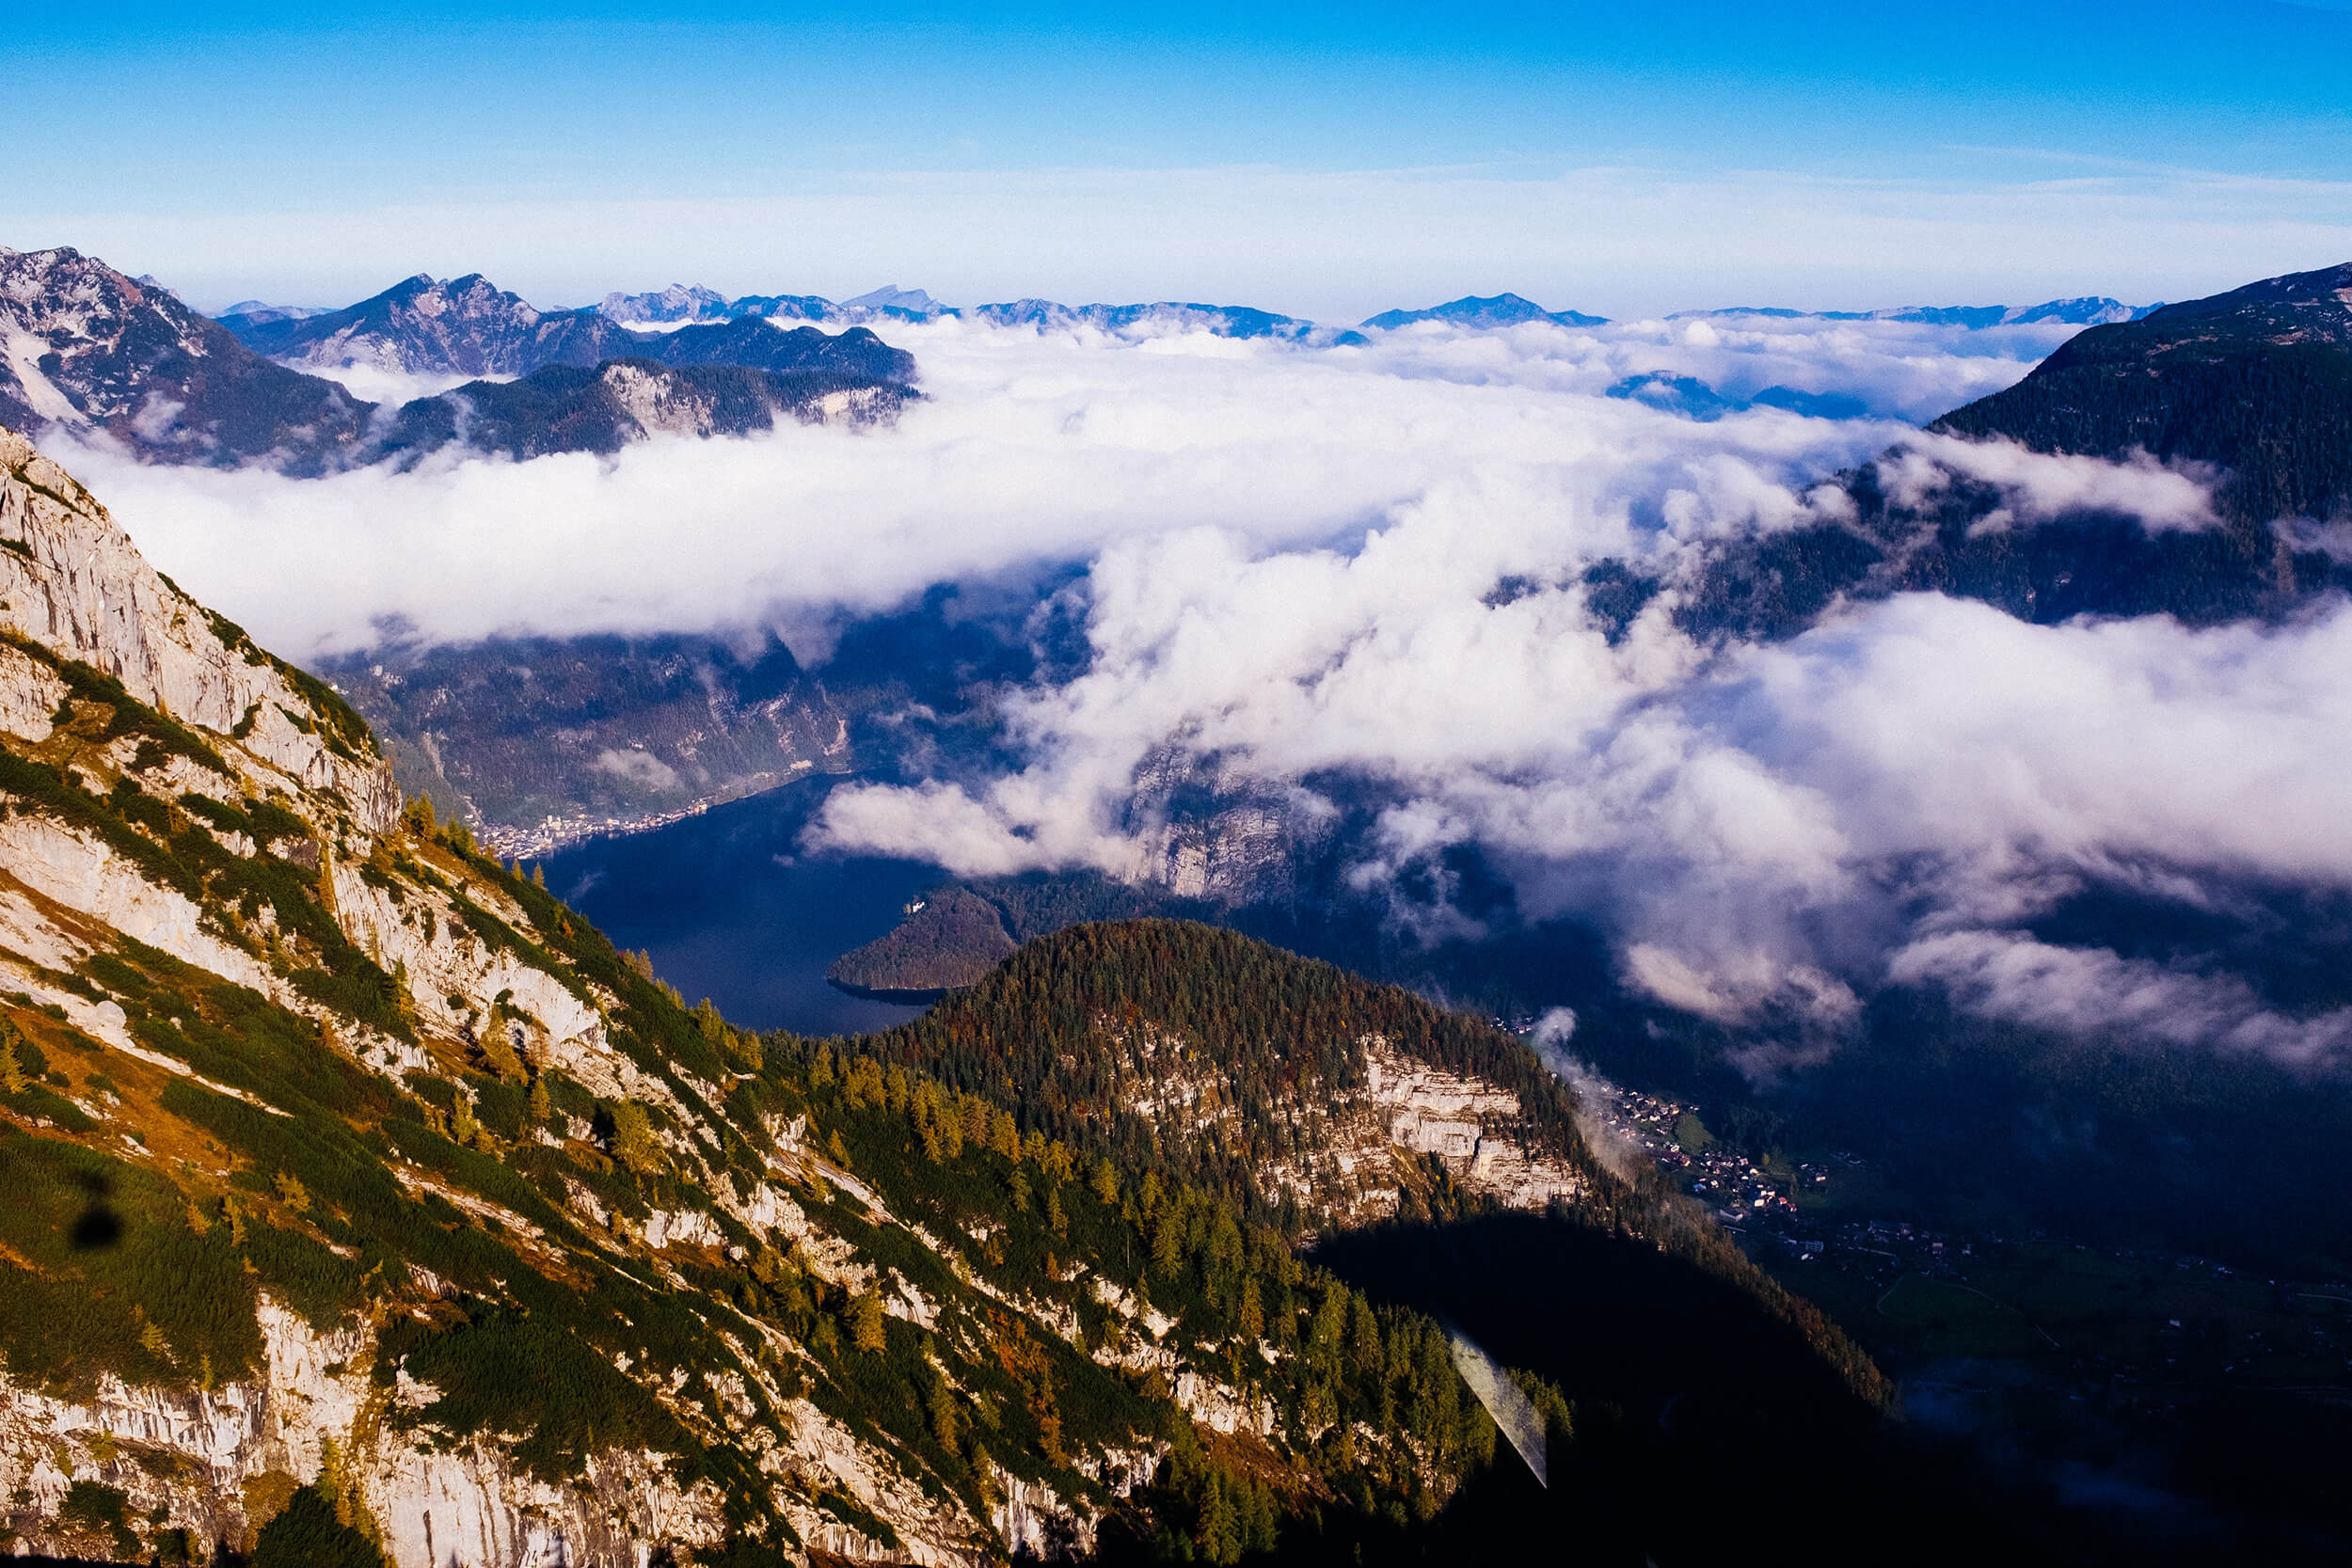 Clouds are mostly gone and the view offered by the cable car descent is breathtaking